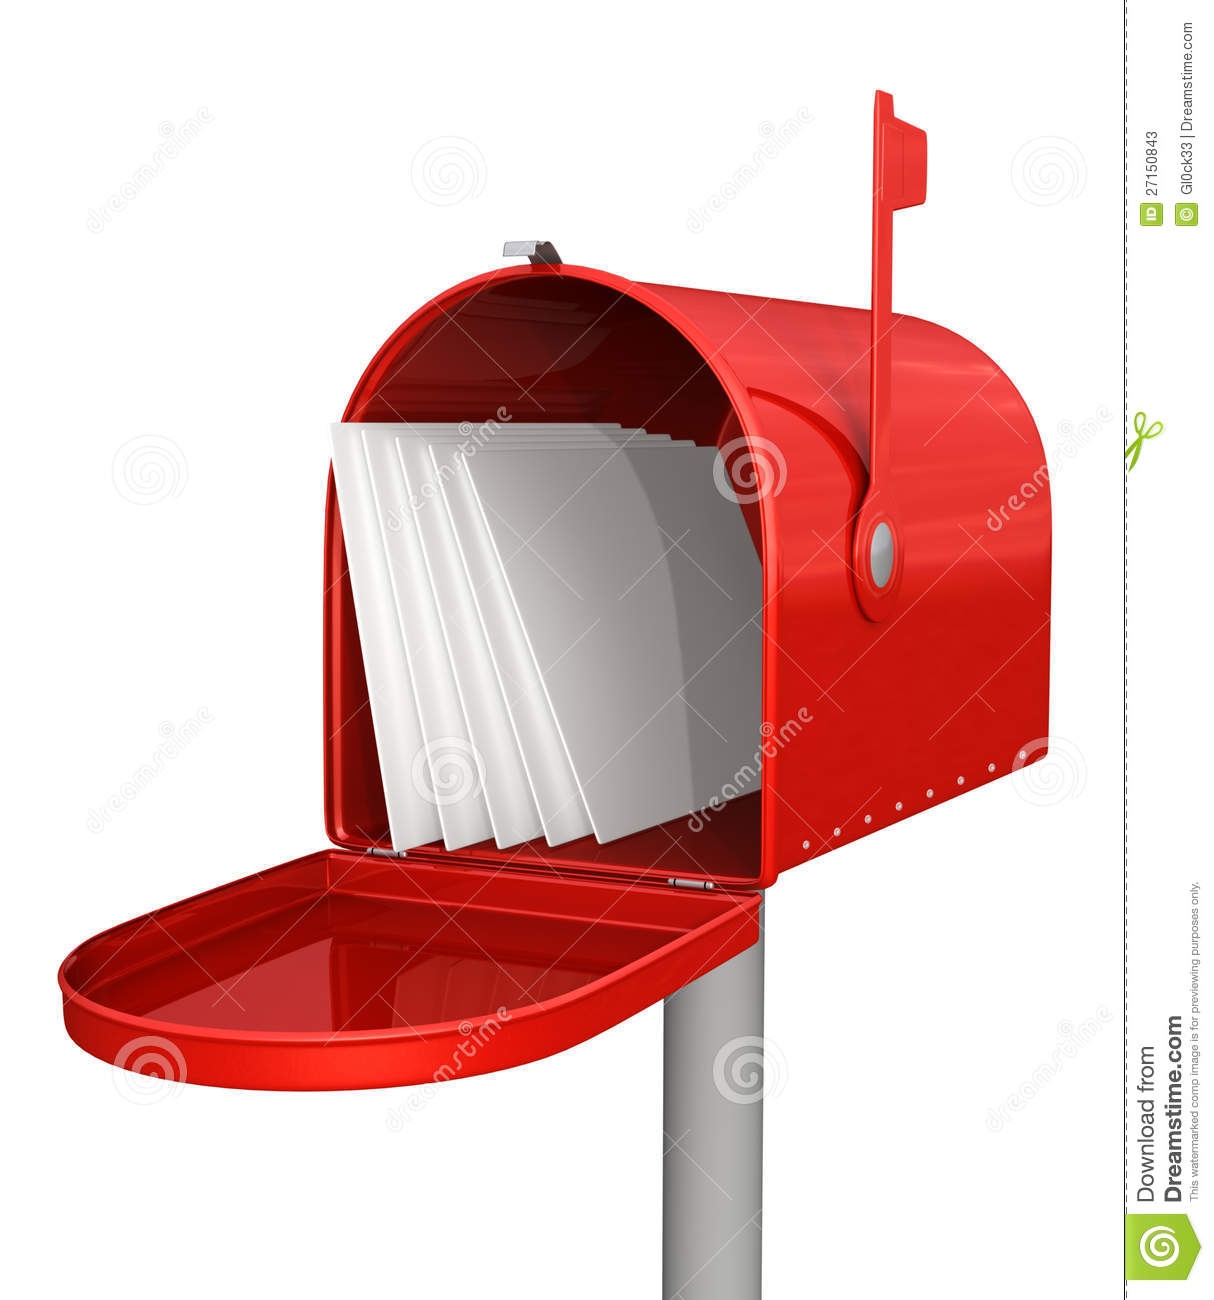 How To Send A Letter In The Mailbox